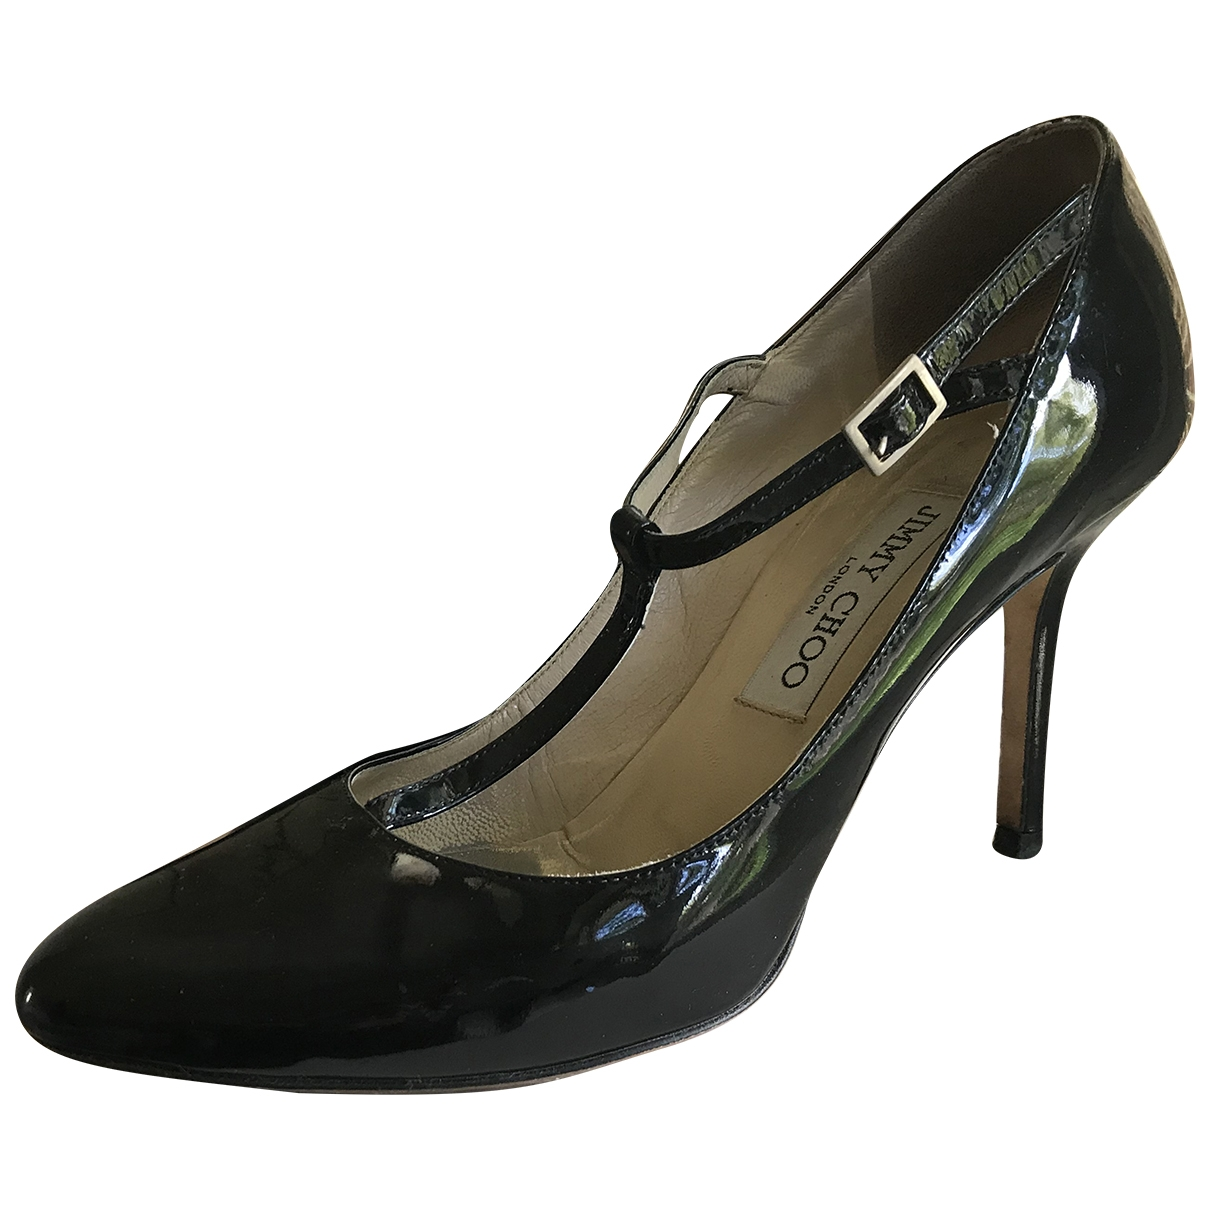 Jimmy Choo \N Pumps in  Schwarz Lackleder